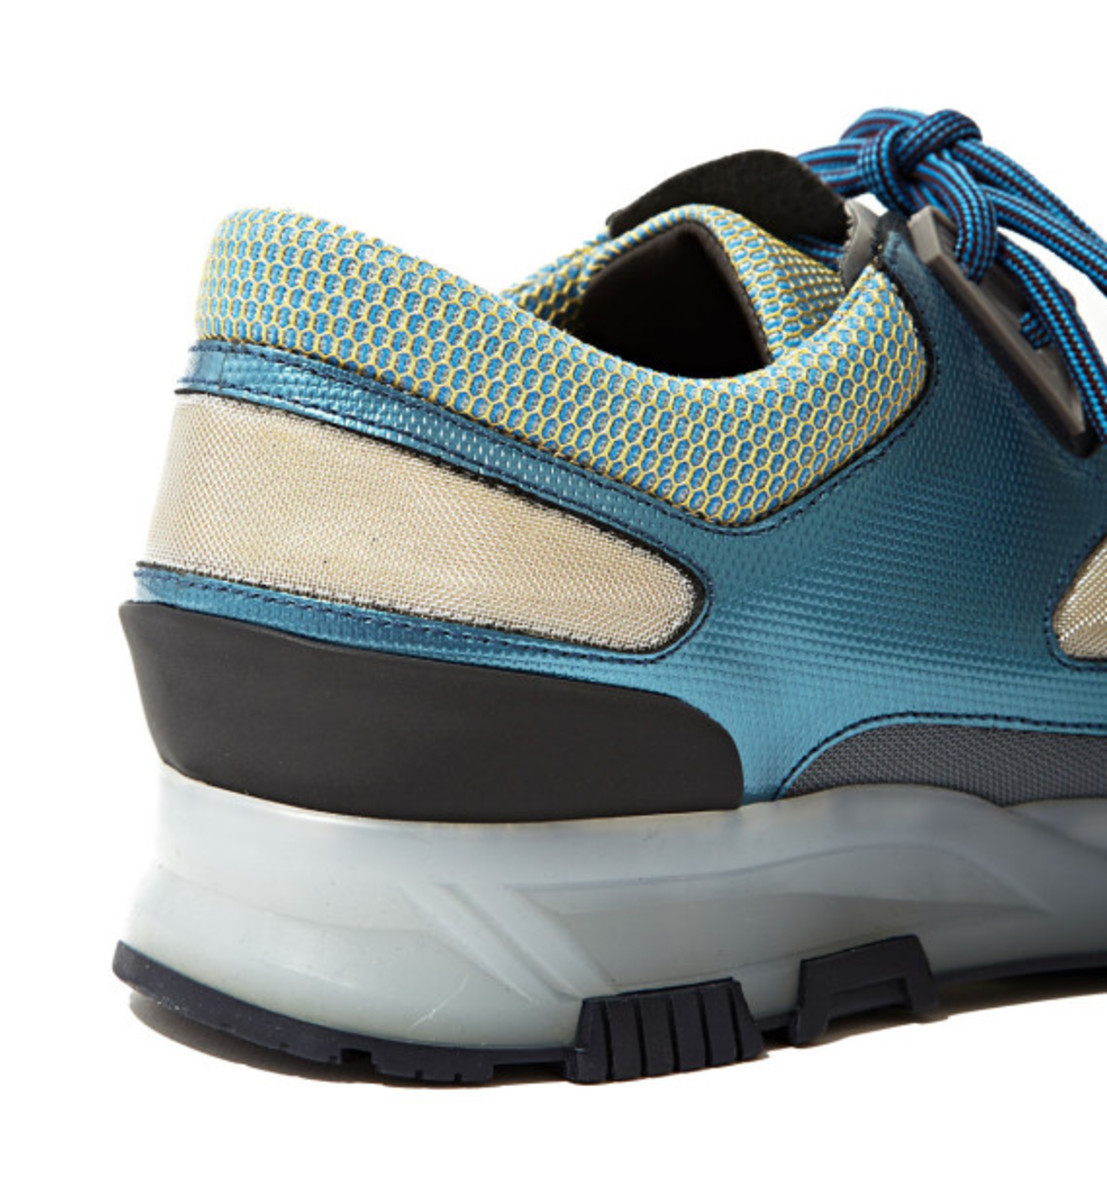 lanvin-technical-mesh-running-sneaker-metallic-peacock-blue-09